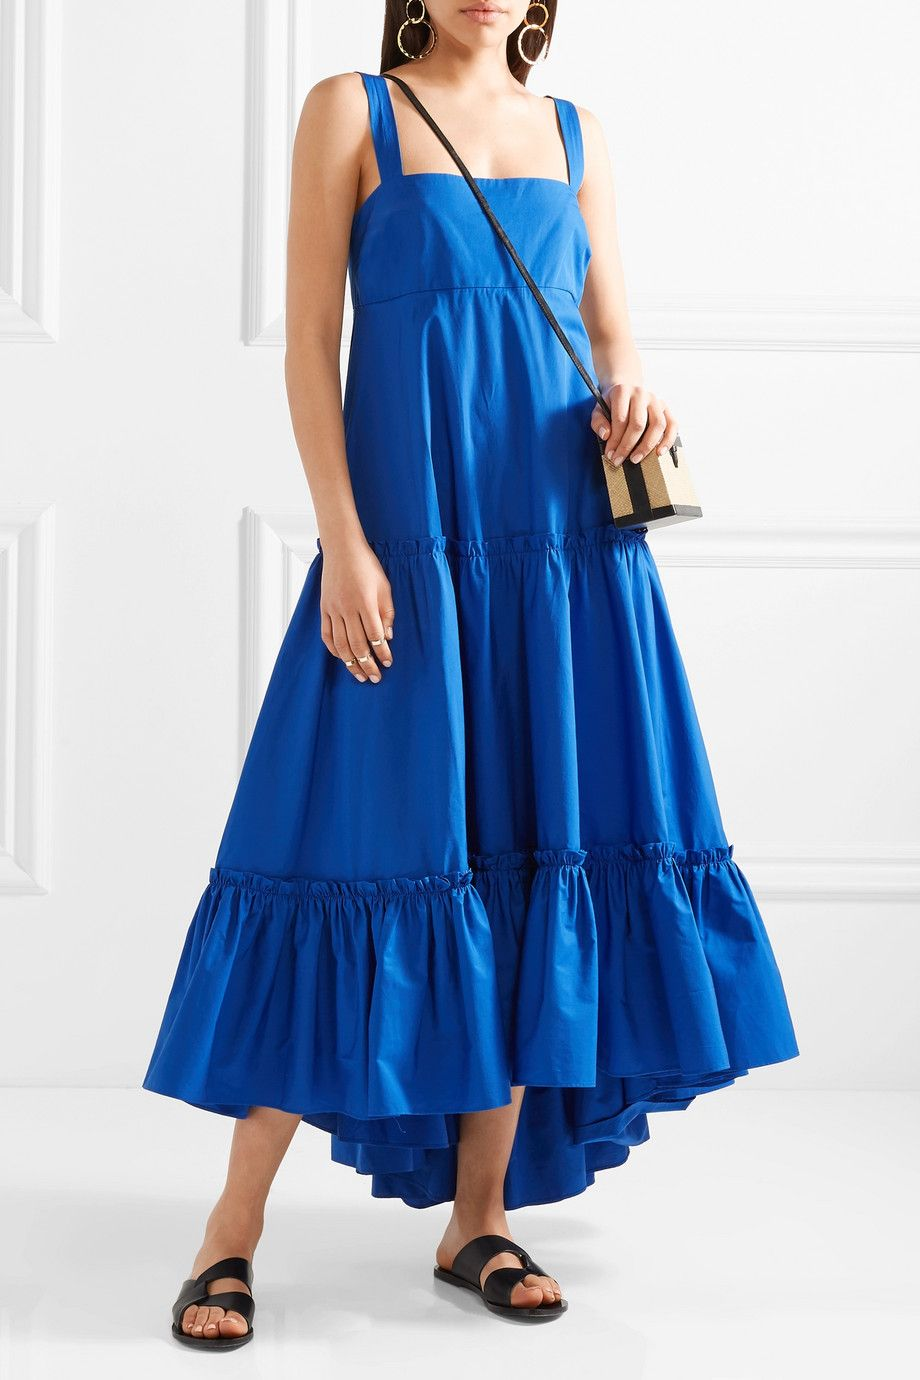 Tiered Cotton-poplin Midi Dress - Cobalt blue MDS Stripes Cheap Sale Manchester Great Sale Clearance Fake Best Place Online Sale Low Price 2bzsf